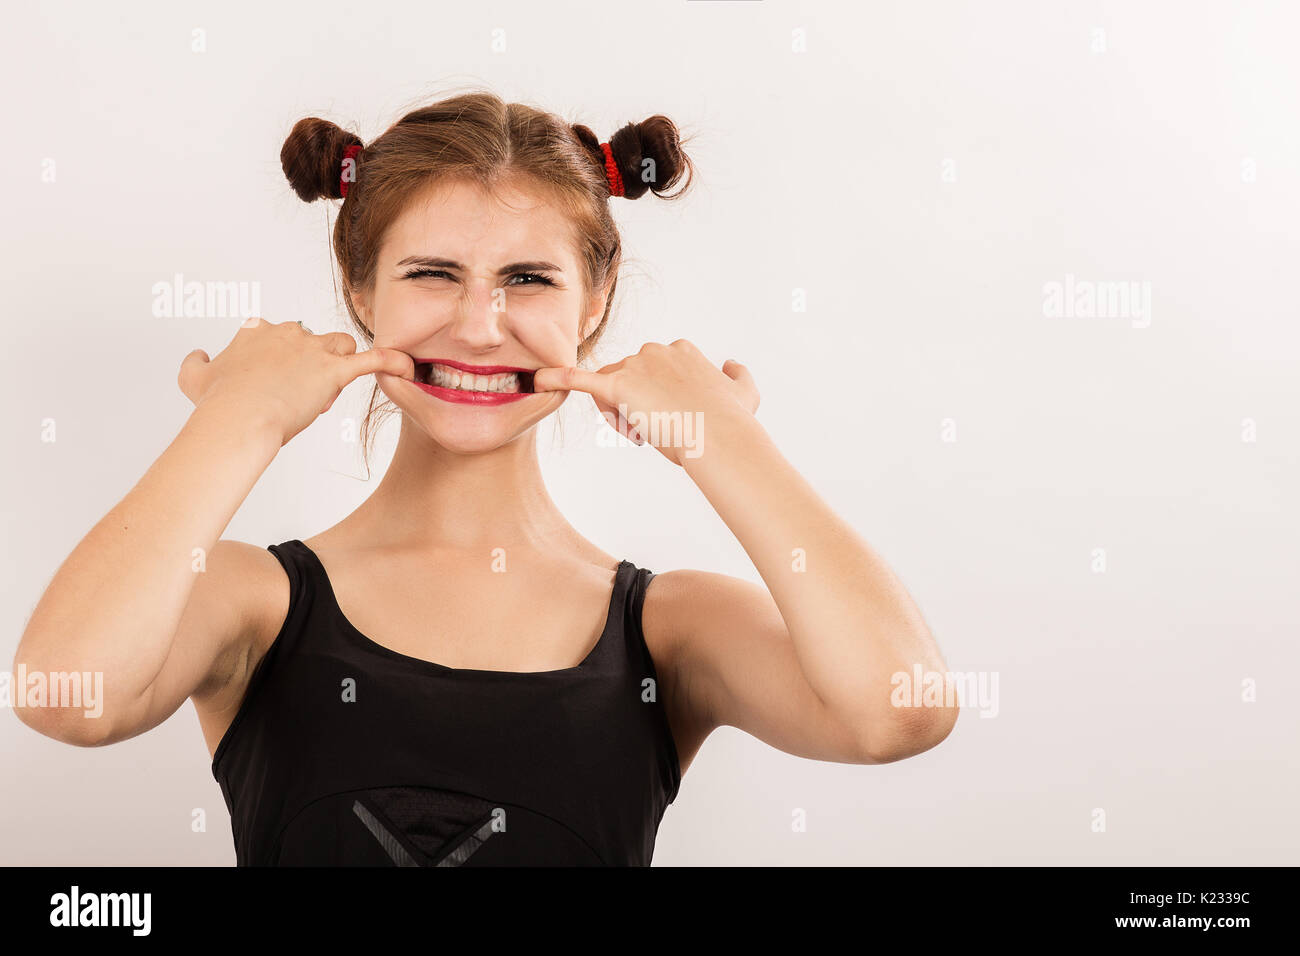 fun beautiful woman grimacing shows her teeth on white background with copy space - Stock Image